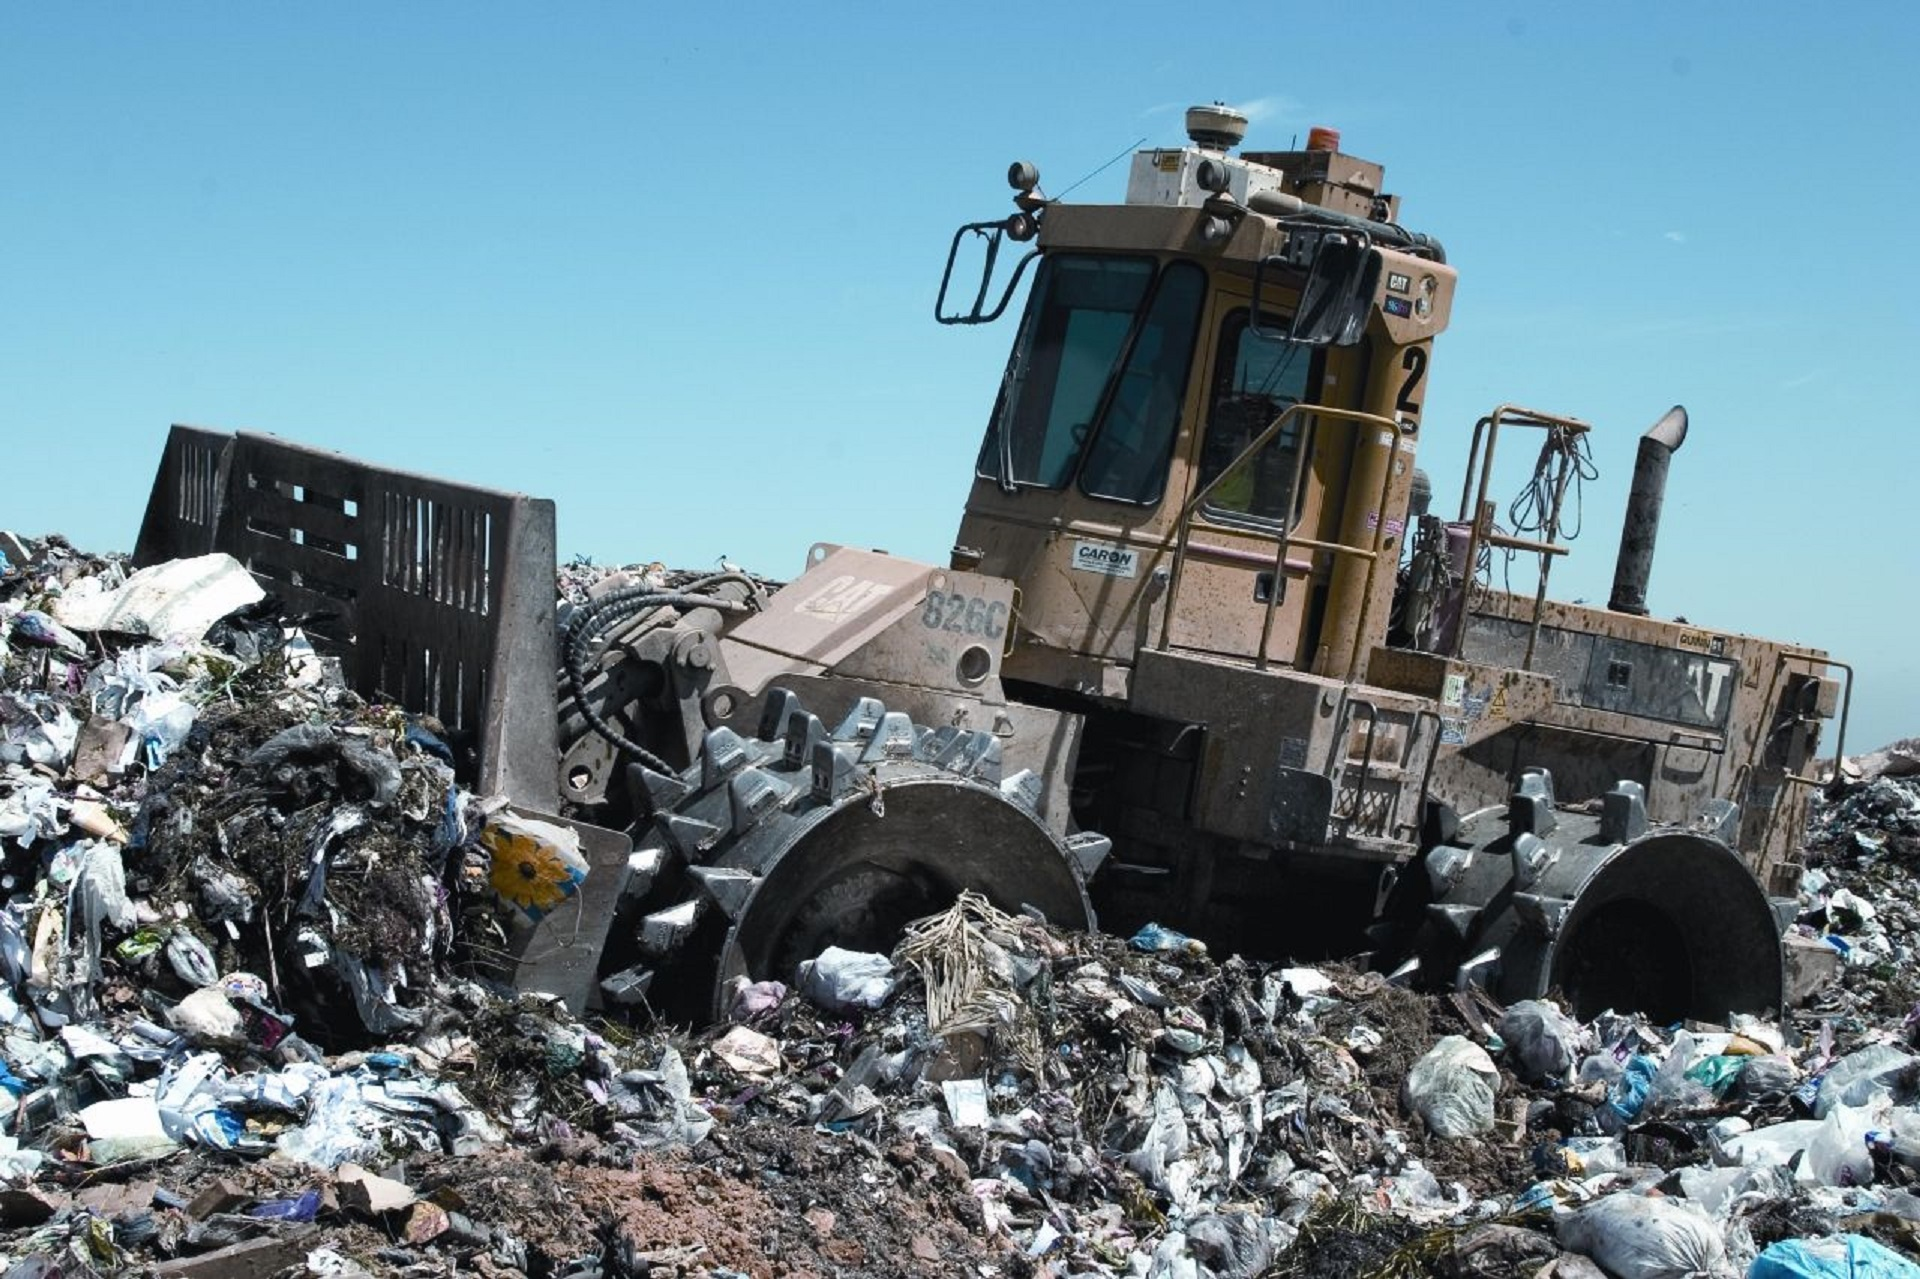 Old Compactor, Compactor, Construction, Machine, Old, HQ Photo